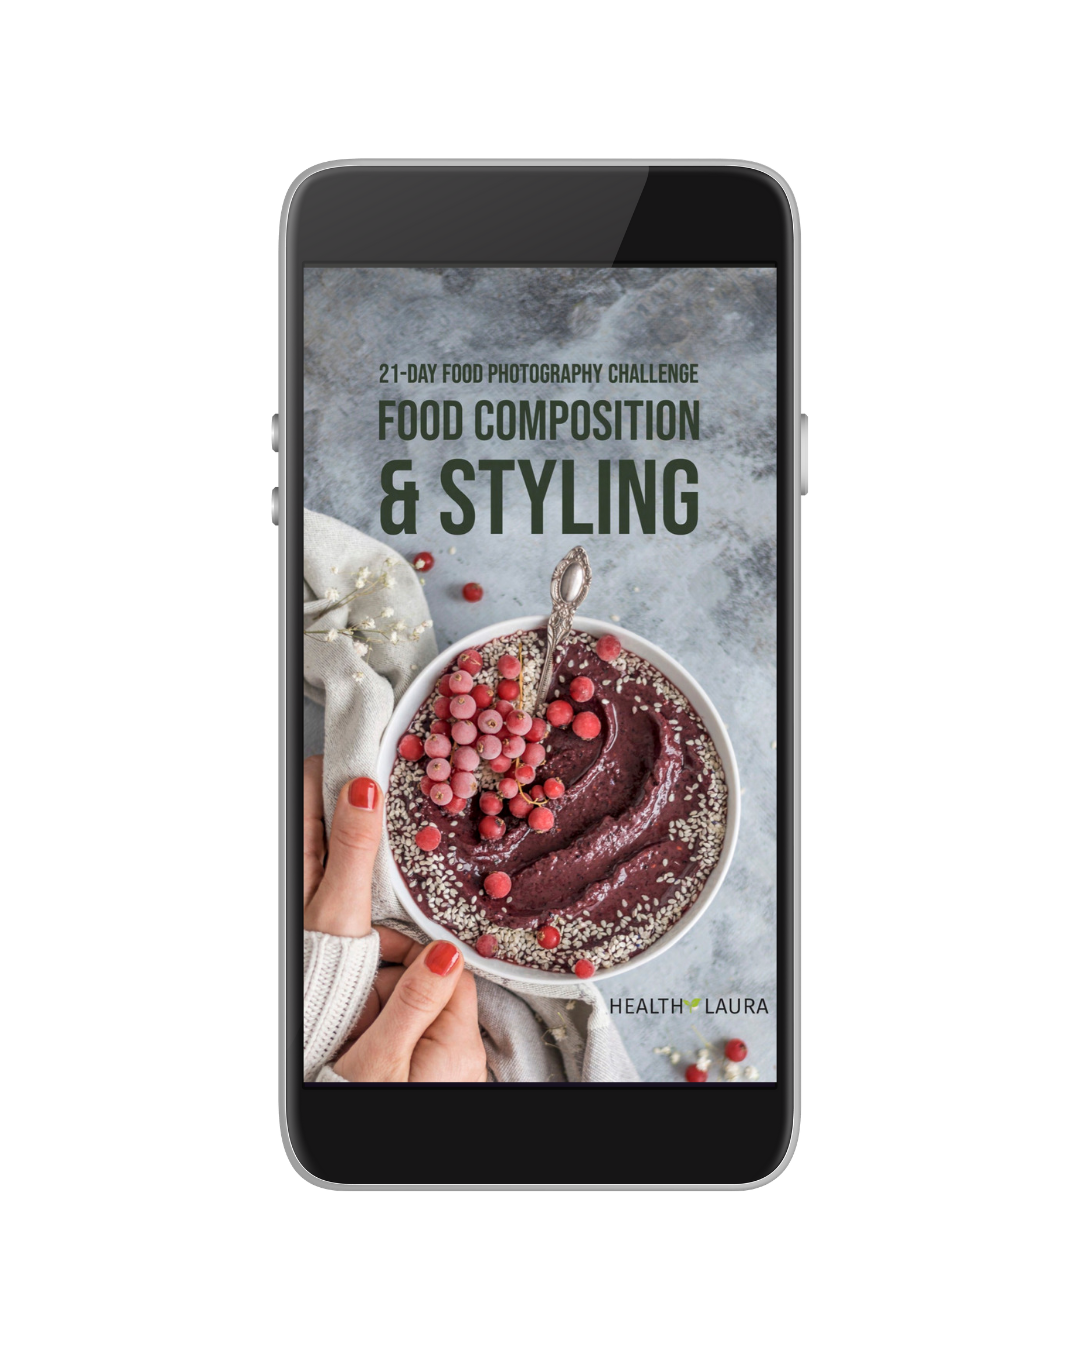 Food Composition vs Food Styling: What's the difference